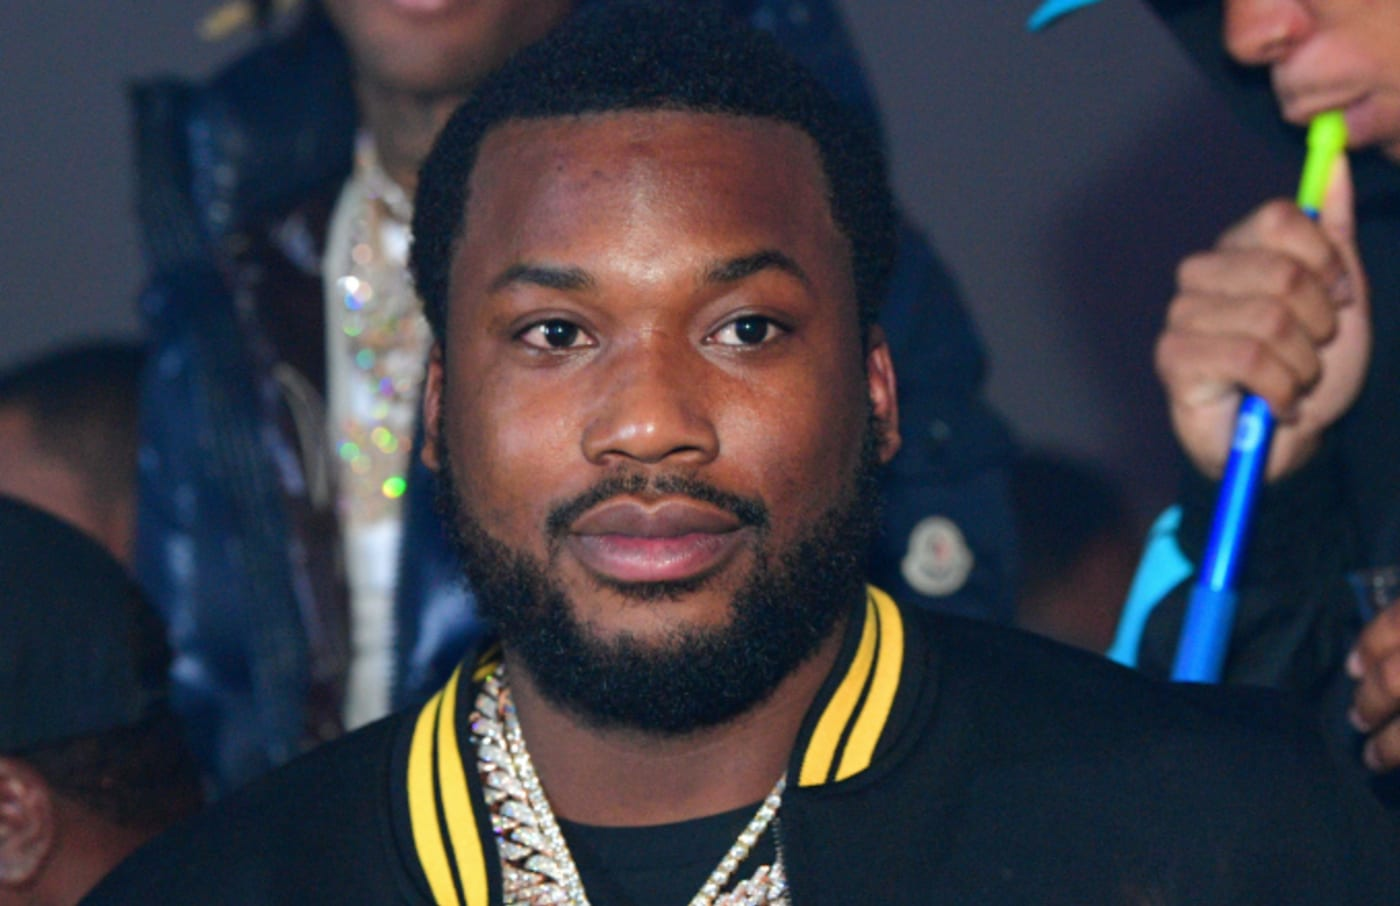 Meek Mill attends Meek Mill 'Championships' album release party